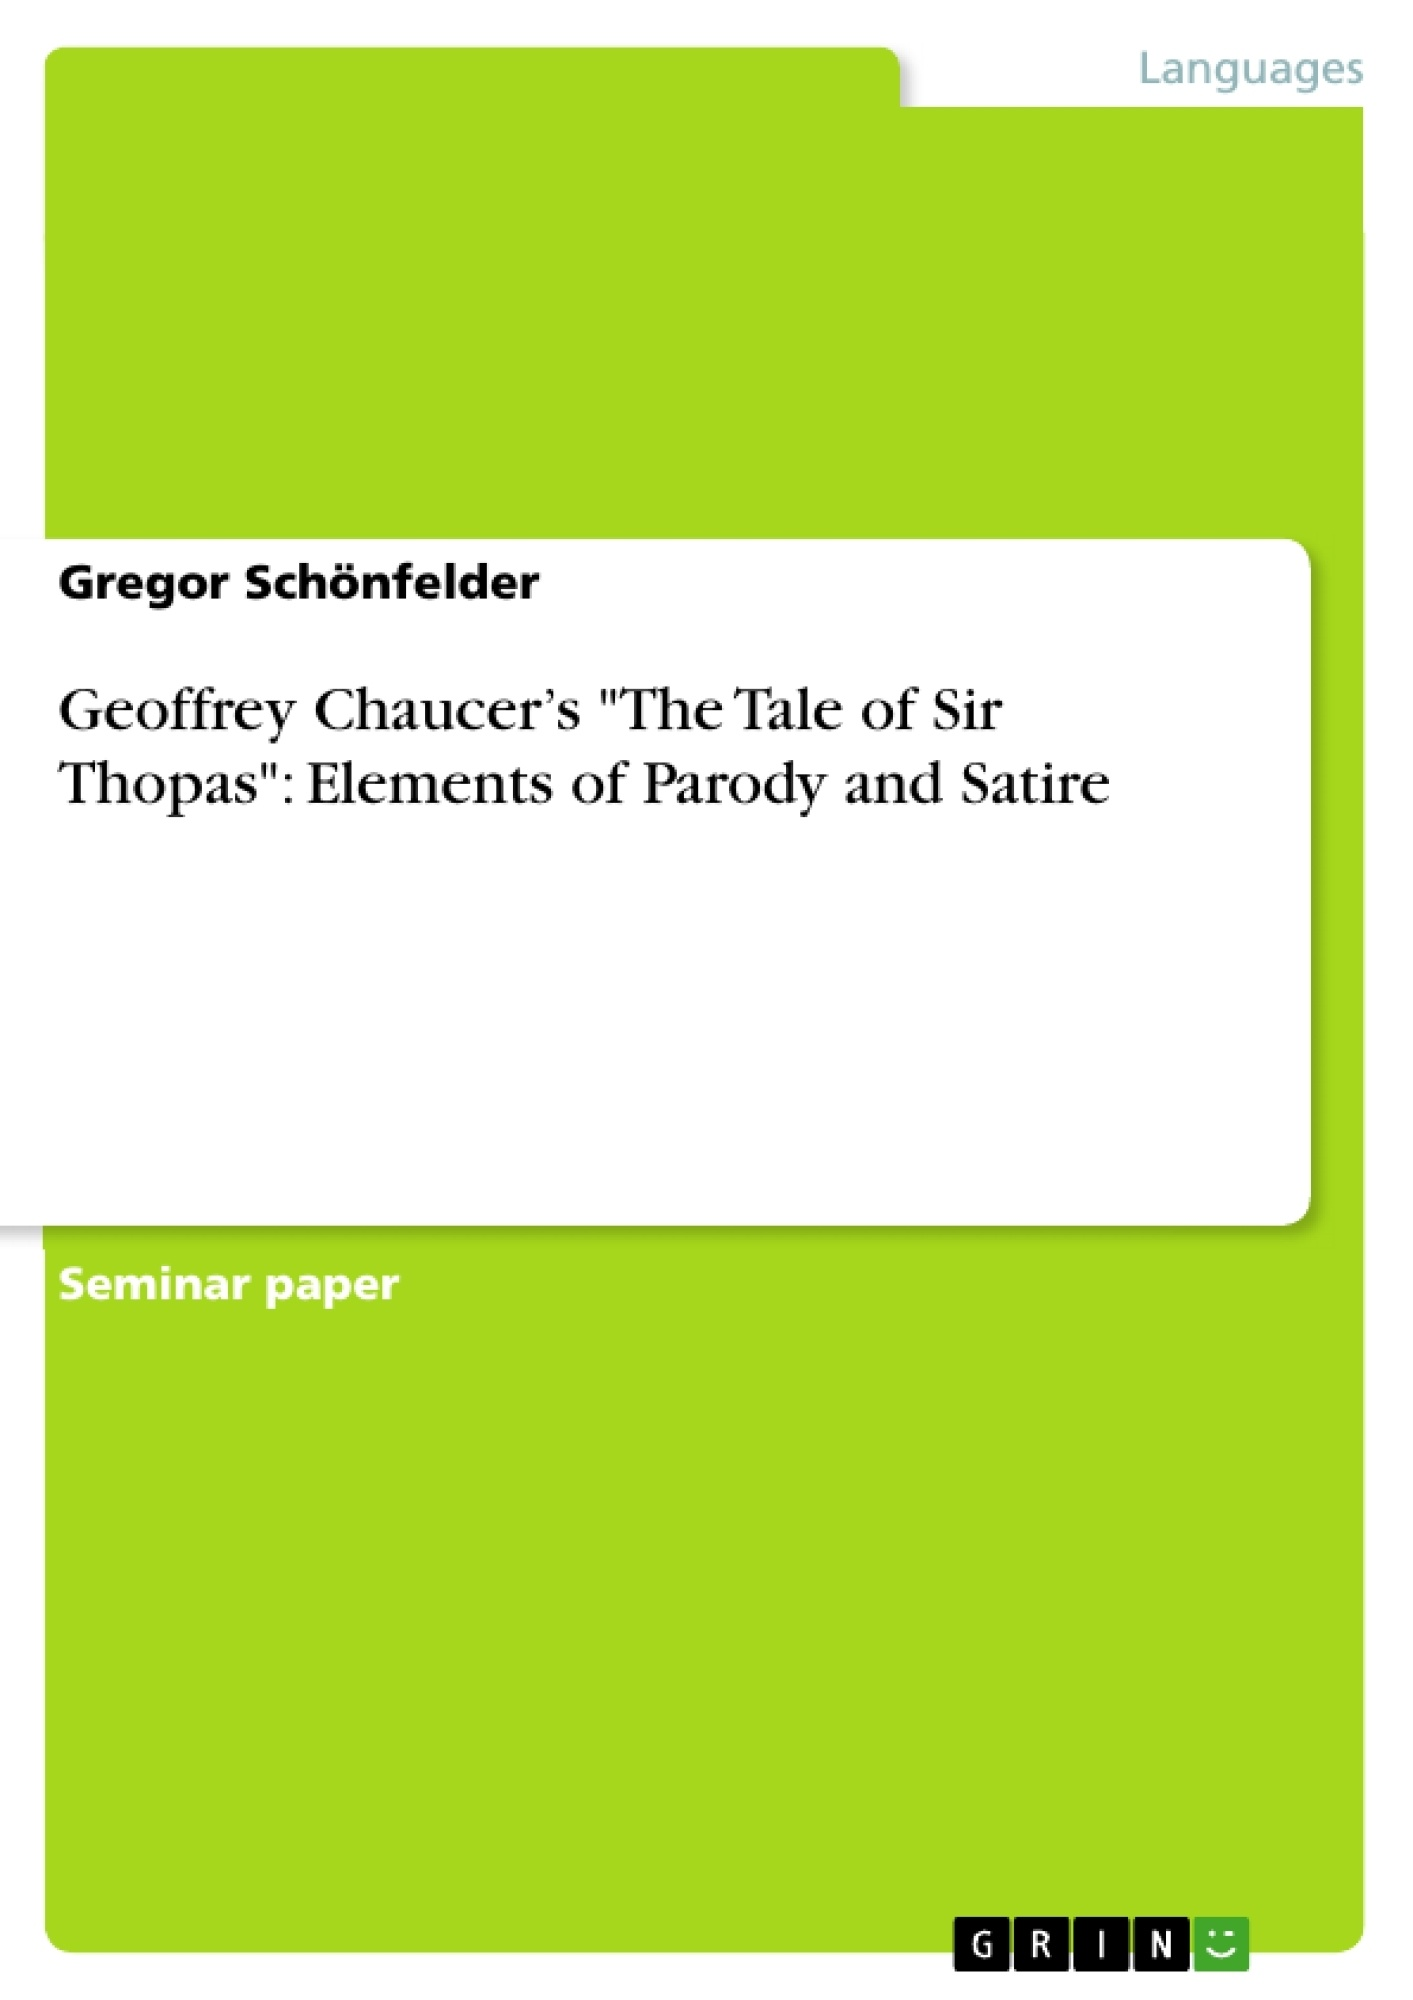 geoffrey chaucer s the tale of sir thopas elements of parody geoffrey chaucer s the tale of sir thopas elements of parody publish your master s thesis bachelor s thesis essay or term paper